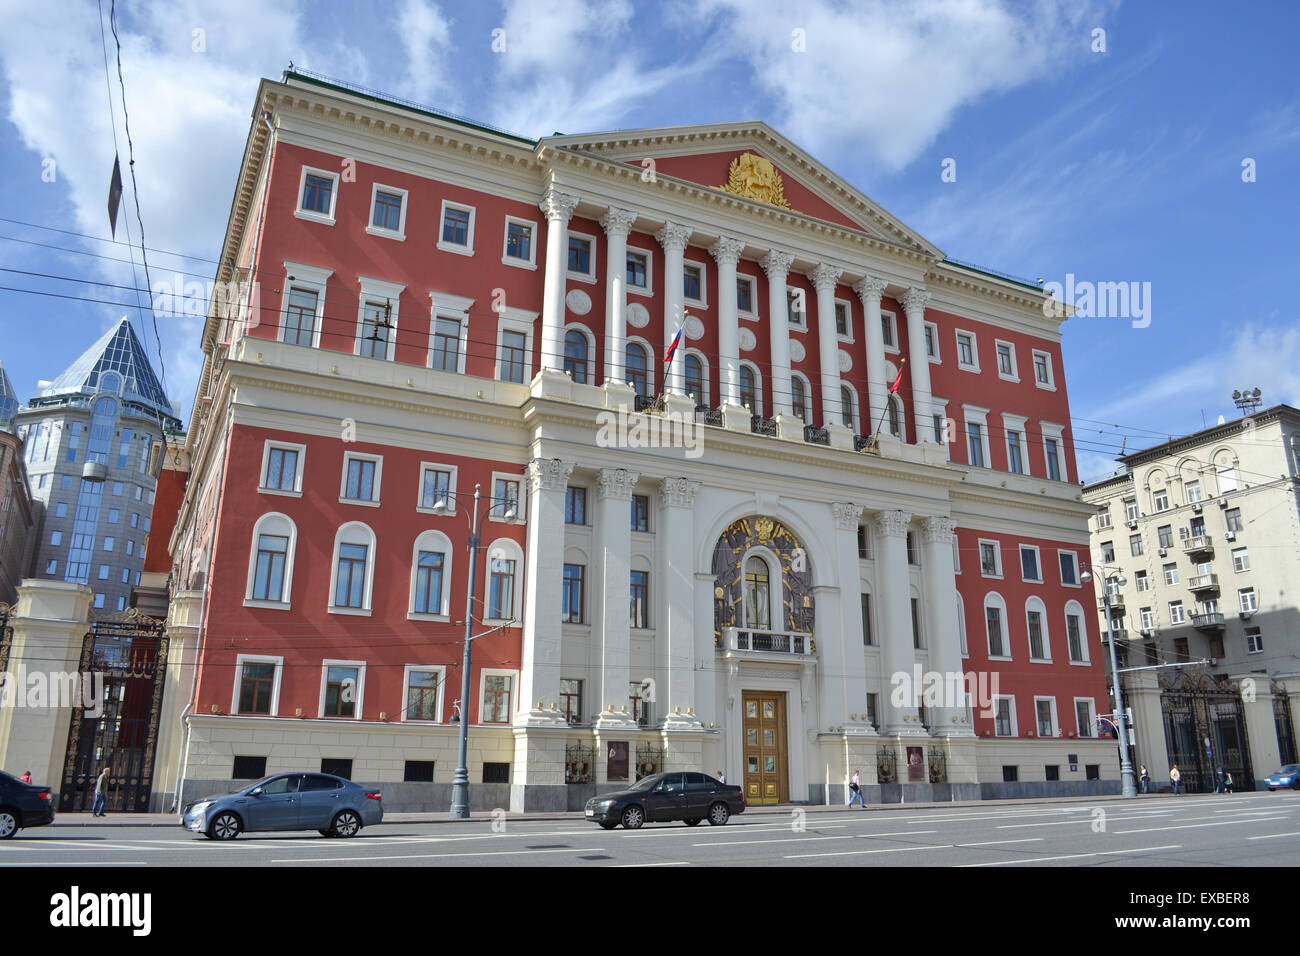 historic former Moscow City Hall, Russia (now replaced with The Moscow City Duma) - Stock Image